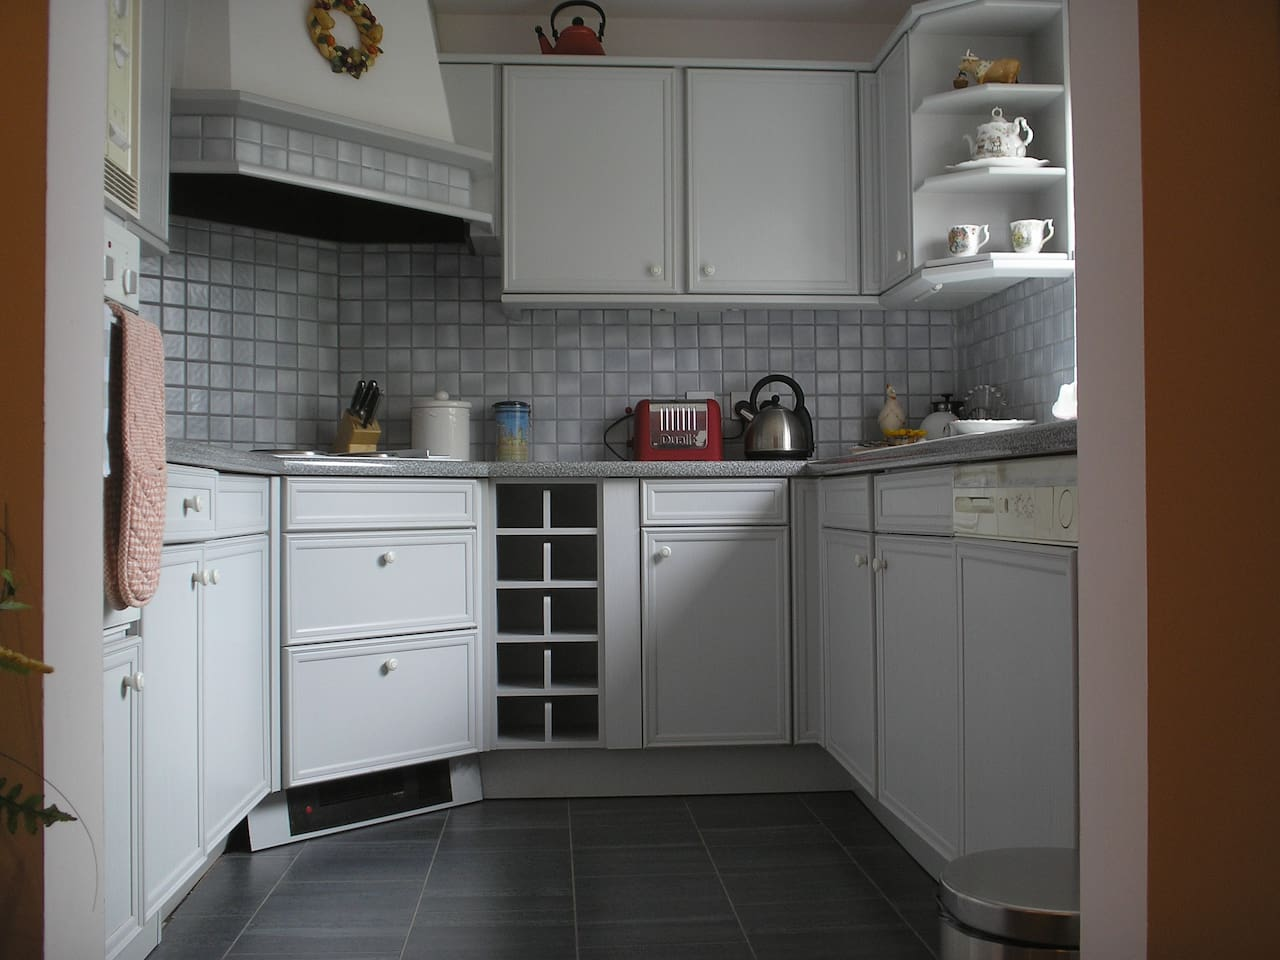 Thoughtful and well equipped kitchen serves both the fast food and gourmand/gourmet cook...